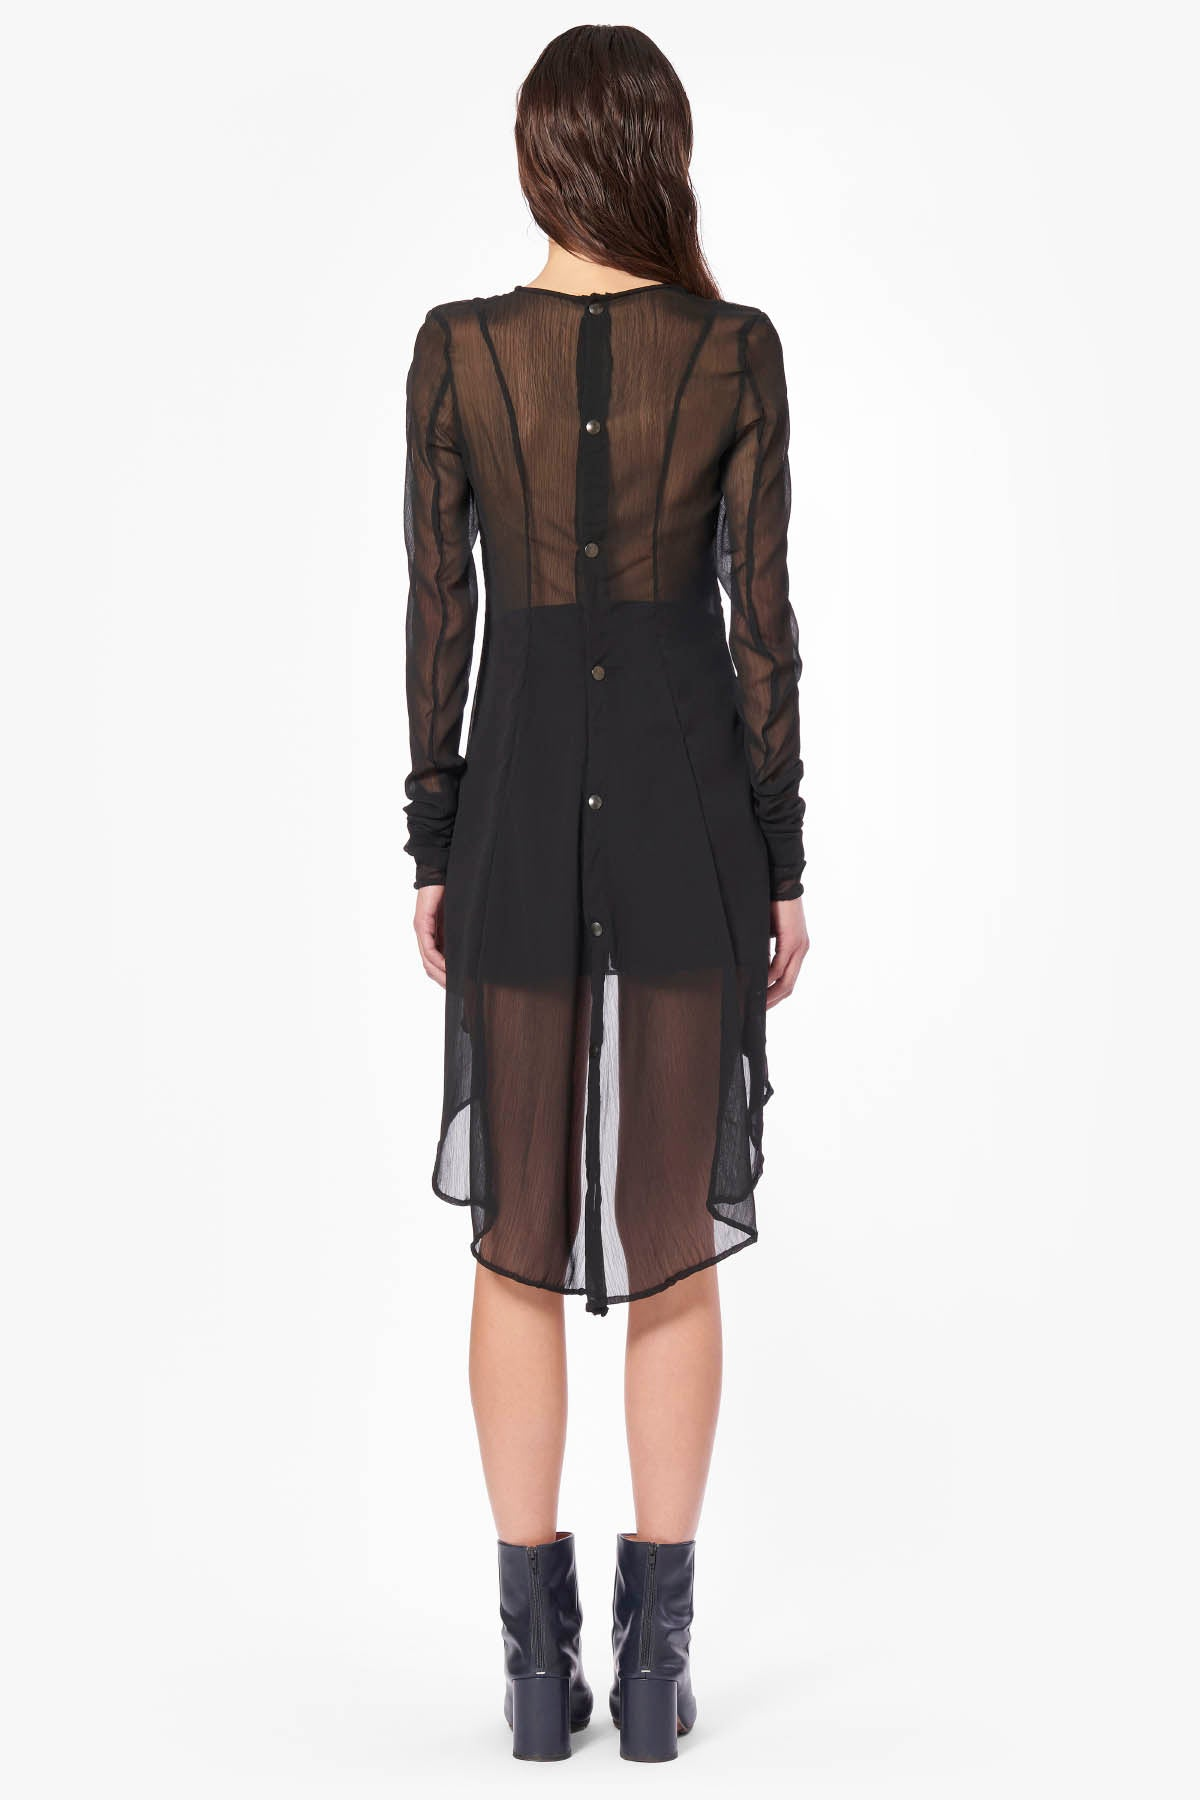 Back Buttons Transparent Dress